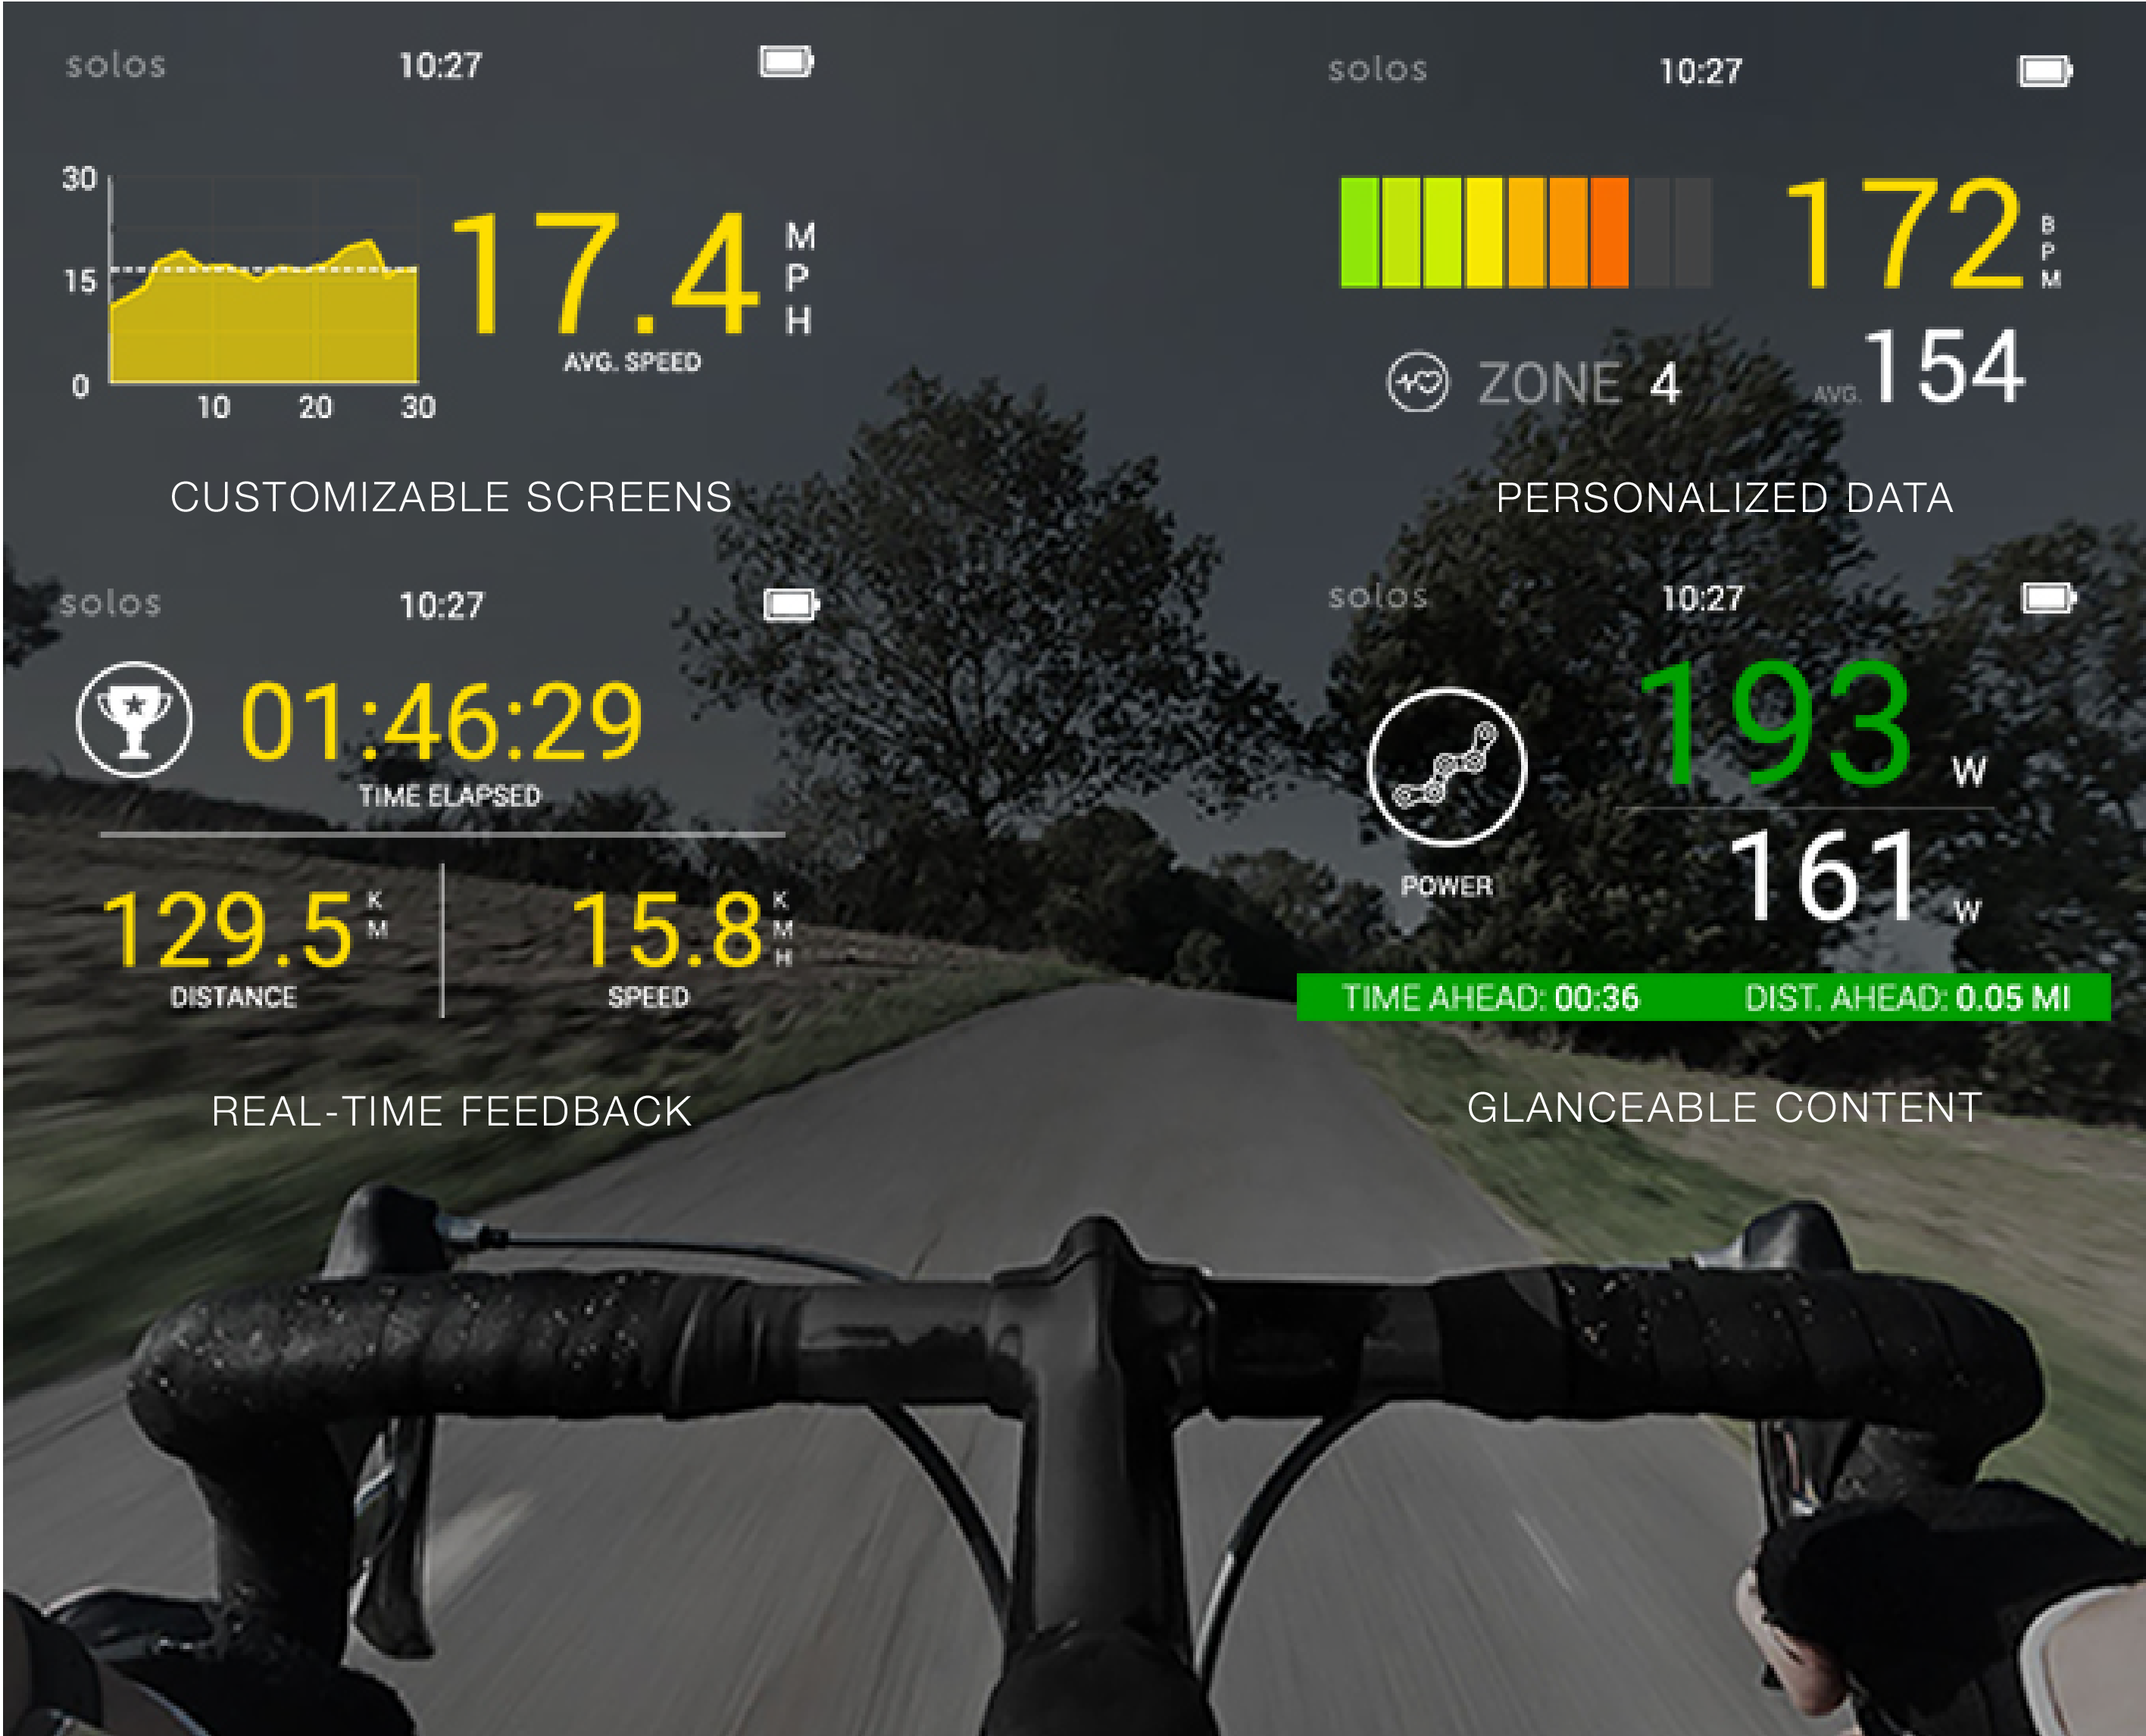 Head up display on Solos smart sunglasses for cyclists to track data from wearables.